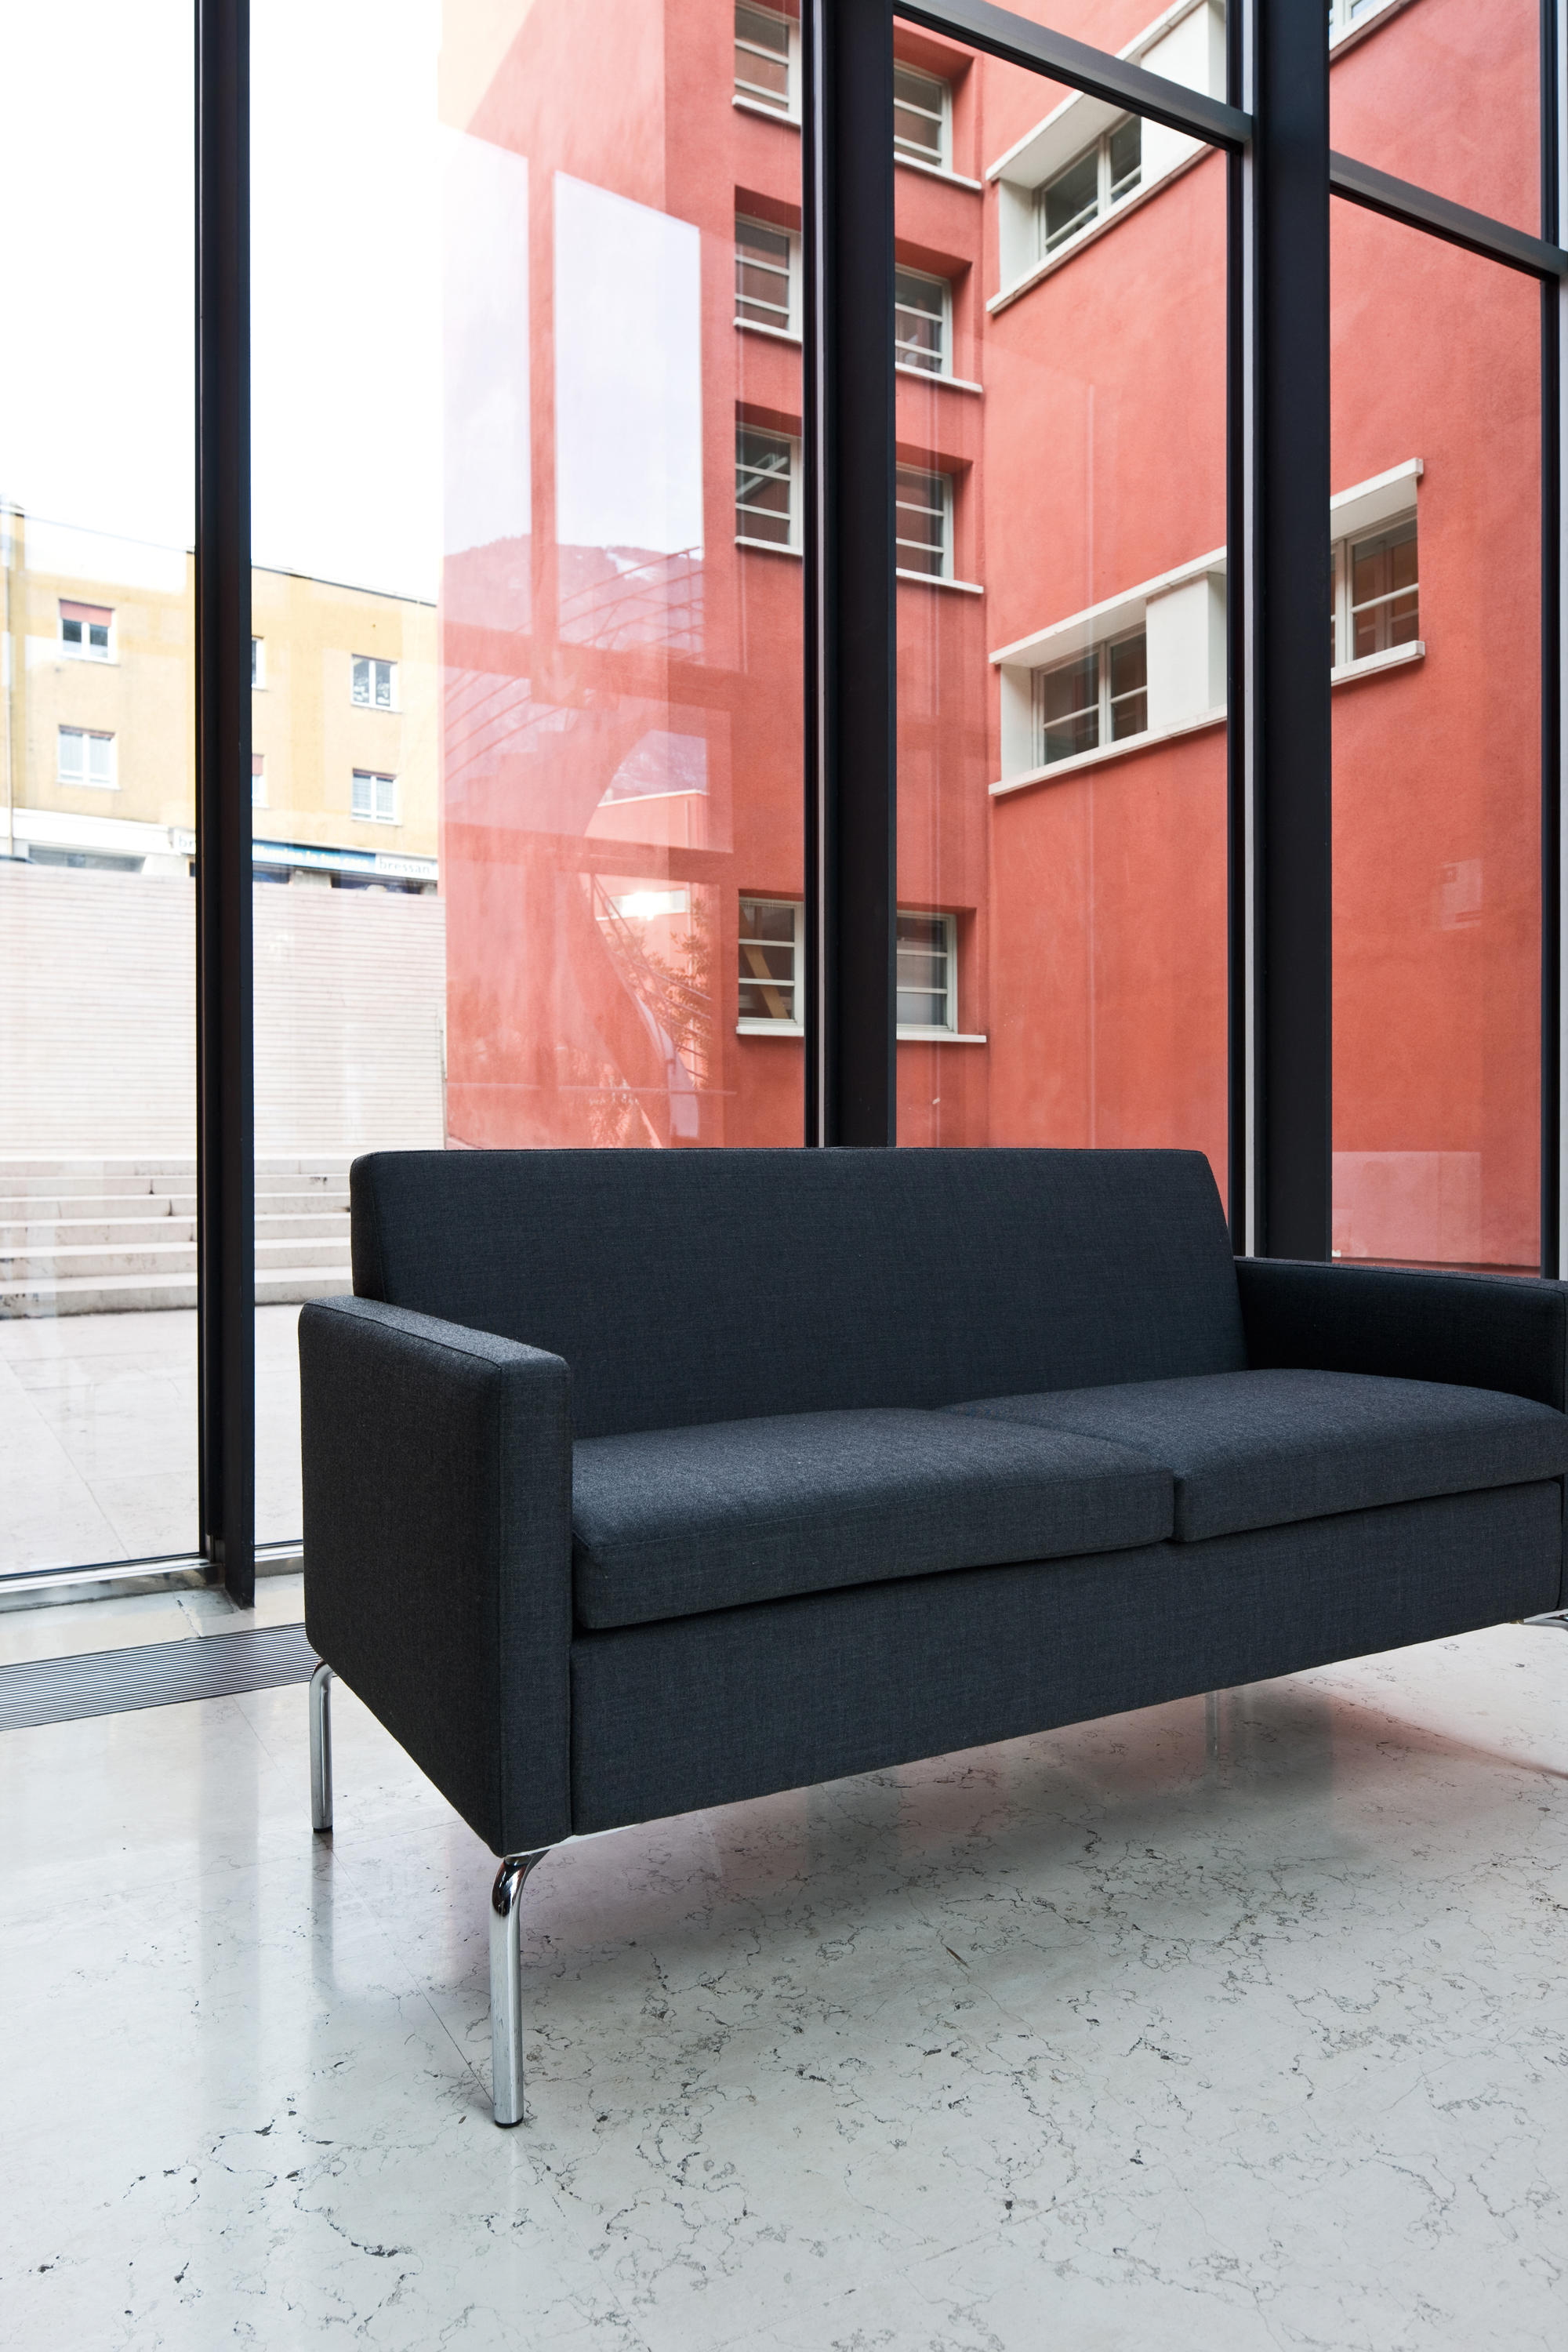 Awe Inspiring Socrate Sofas From La Cividina Architonic Caraccident5 Cool Chair Designs And Ideas Caraccident5Info